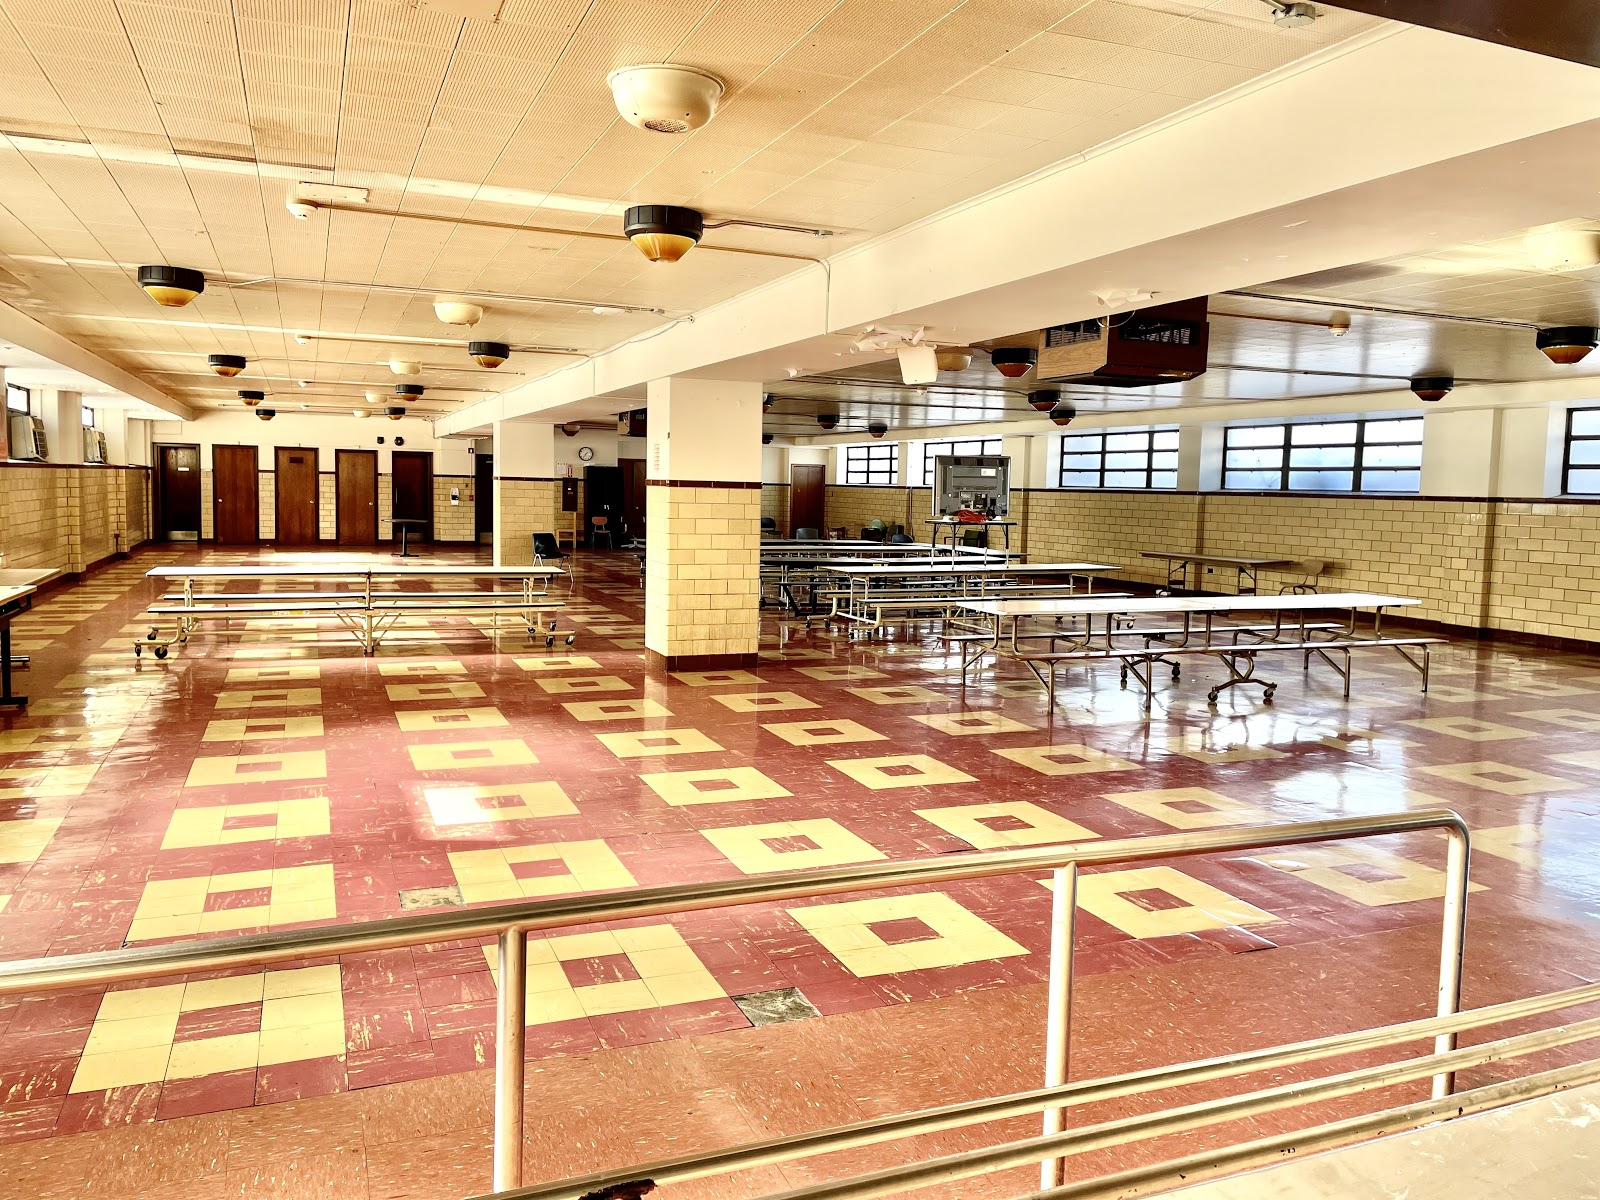 Picture of the cafeteria at the Englewood Campus